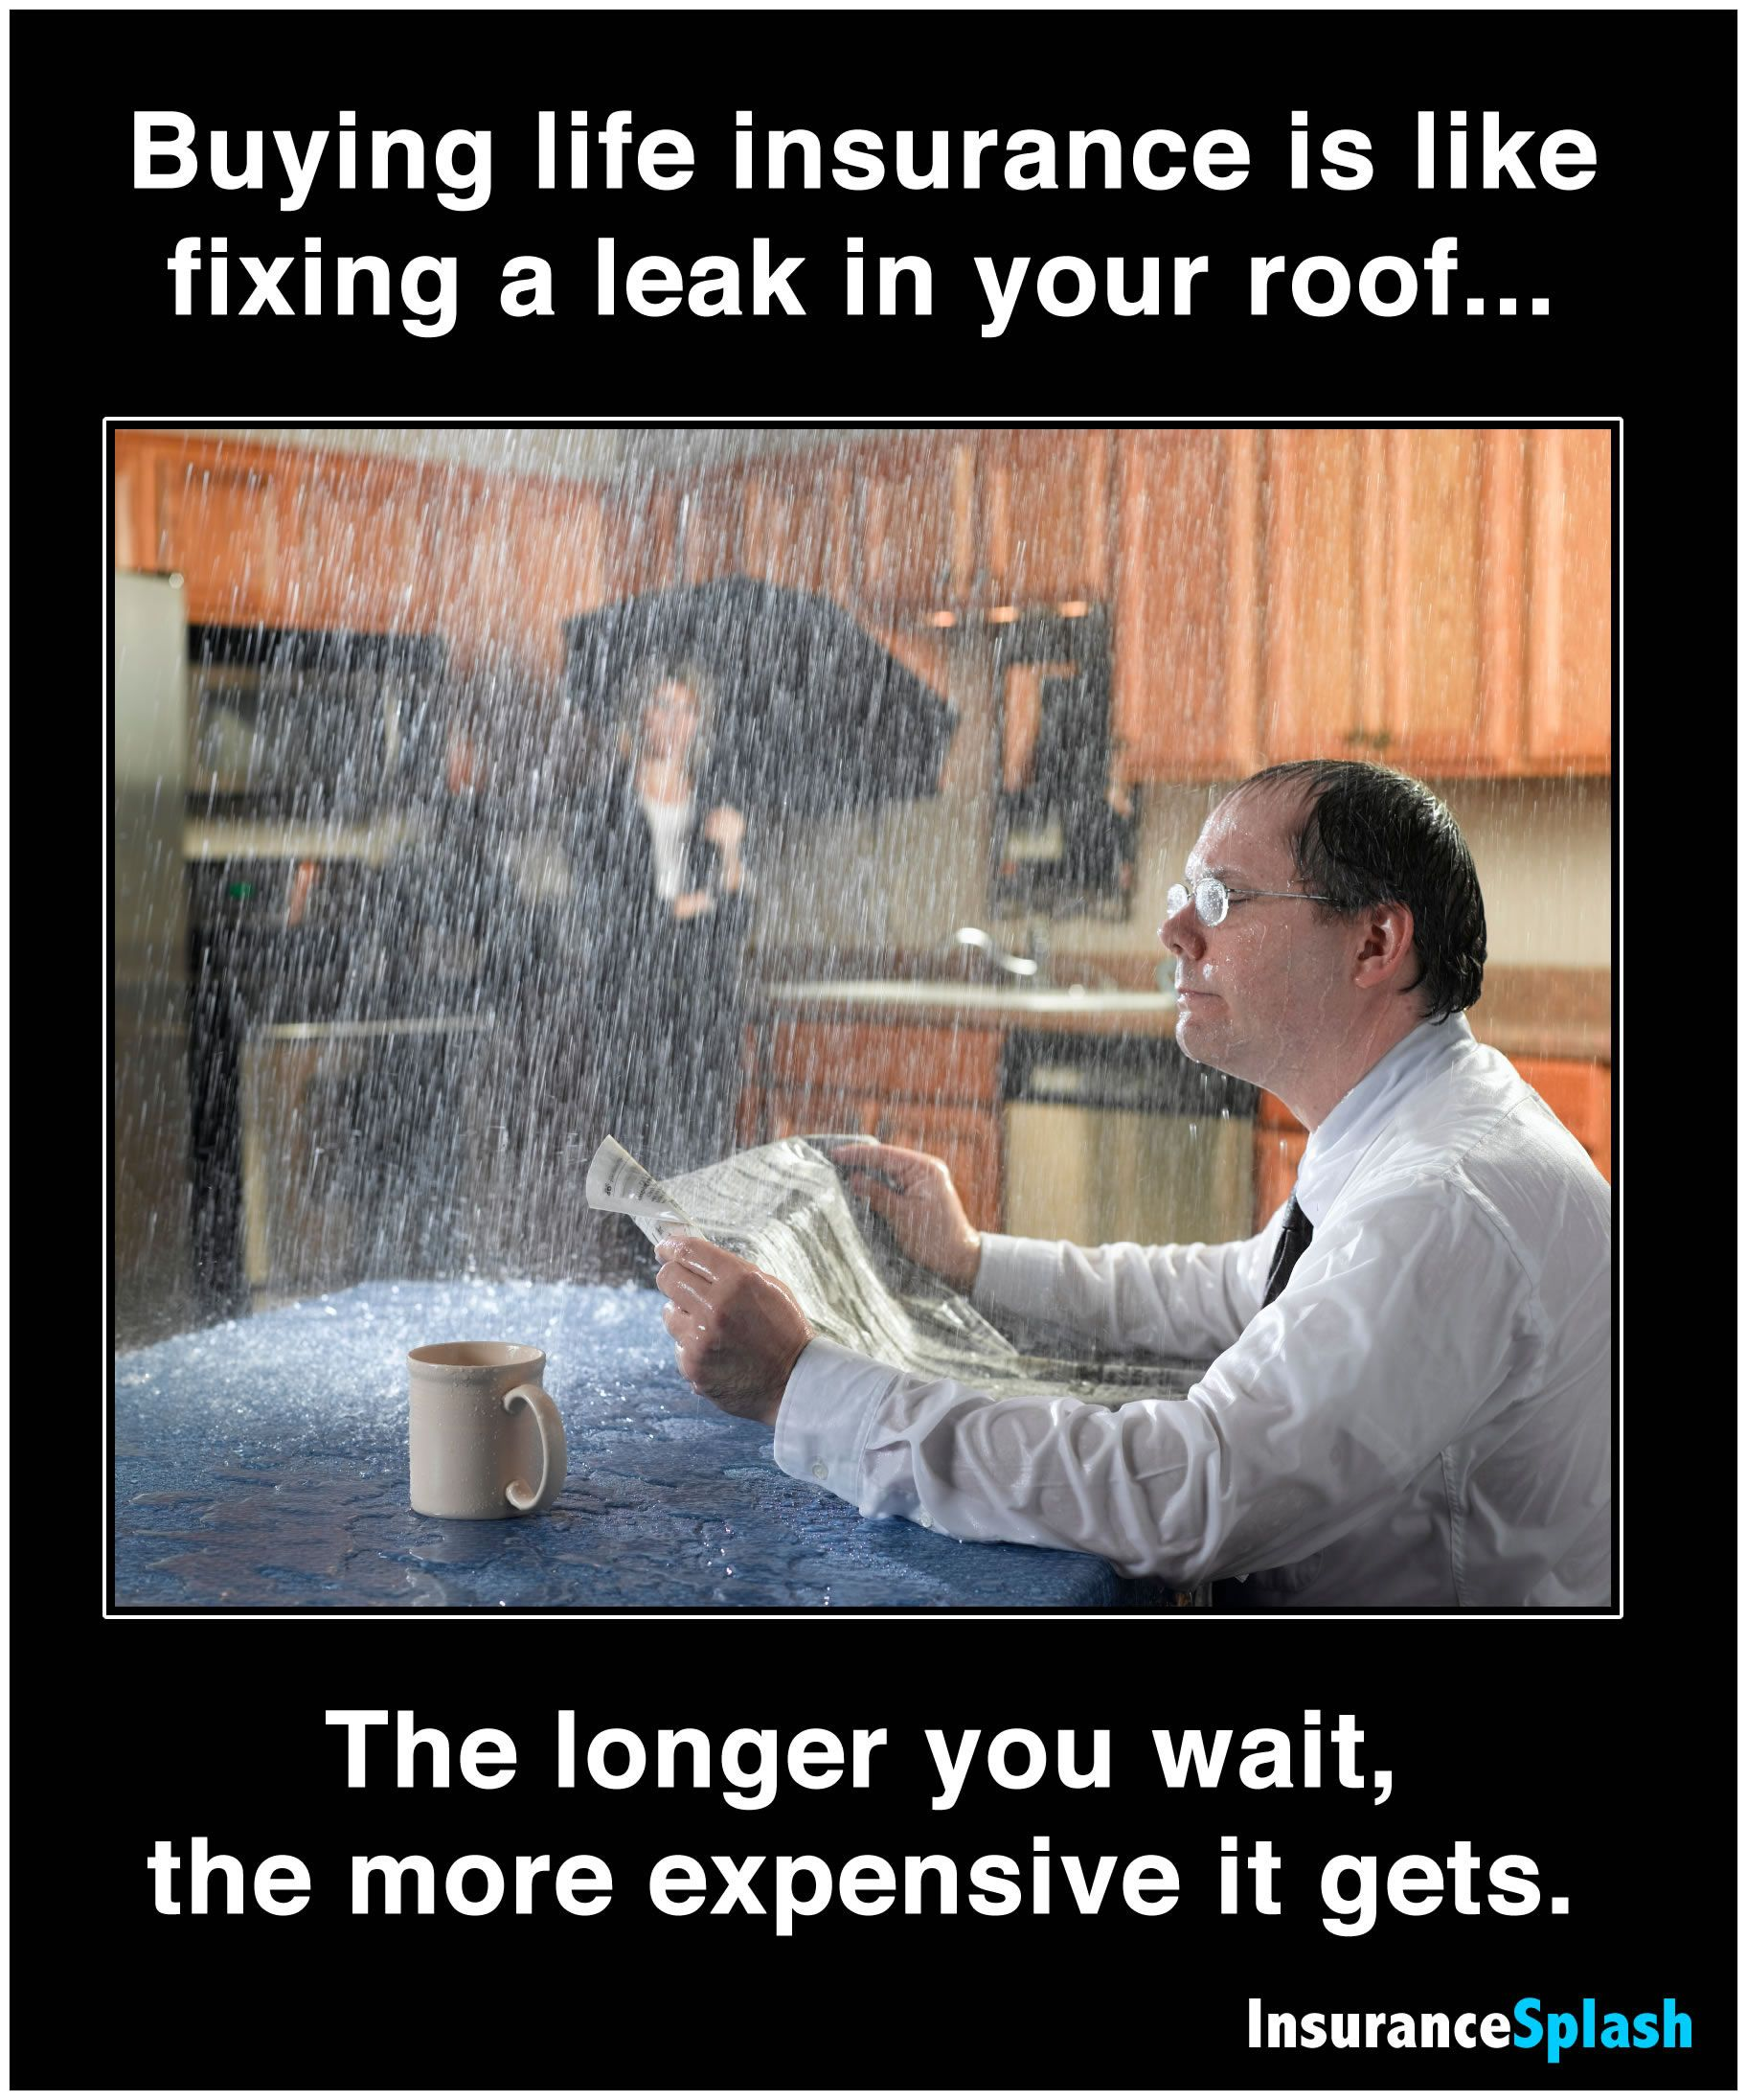 Term Life Insurance Quote Impressive Buying Life Insurance Is Like Fixing A Leak In Your Roofthe . Review